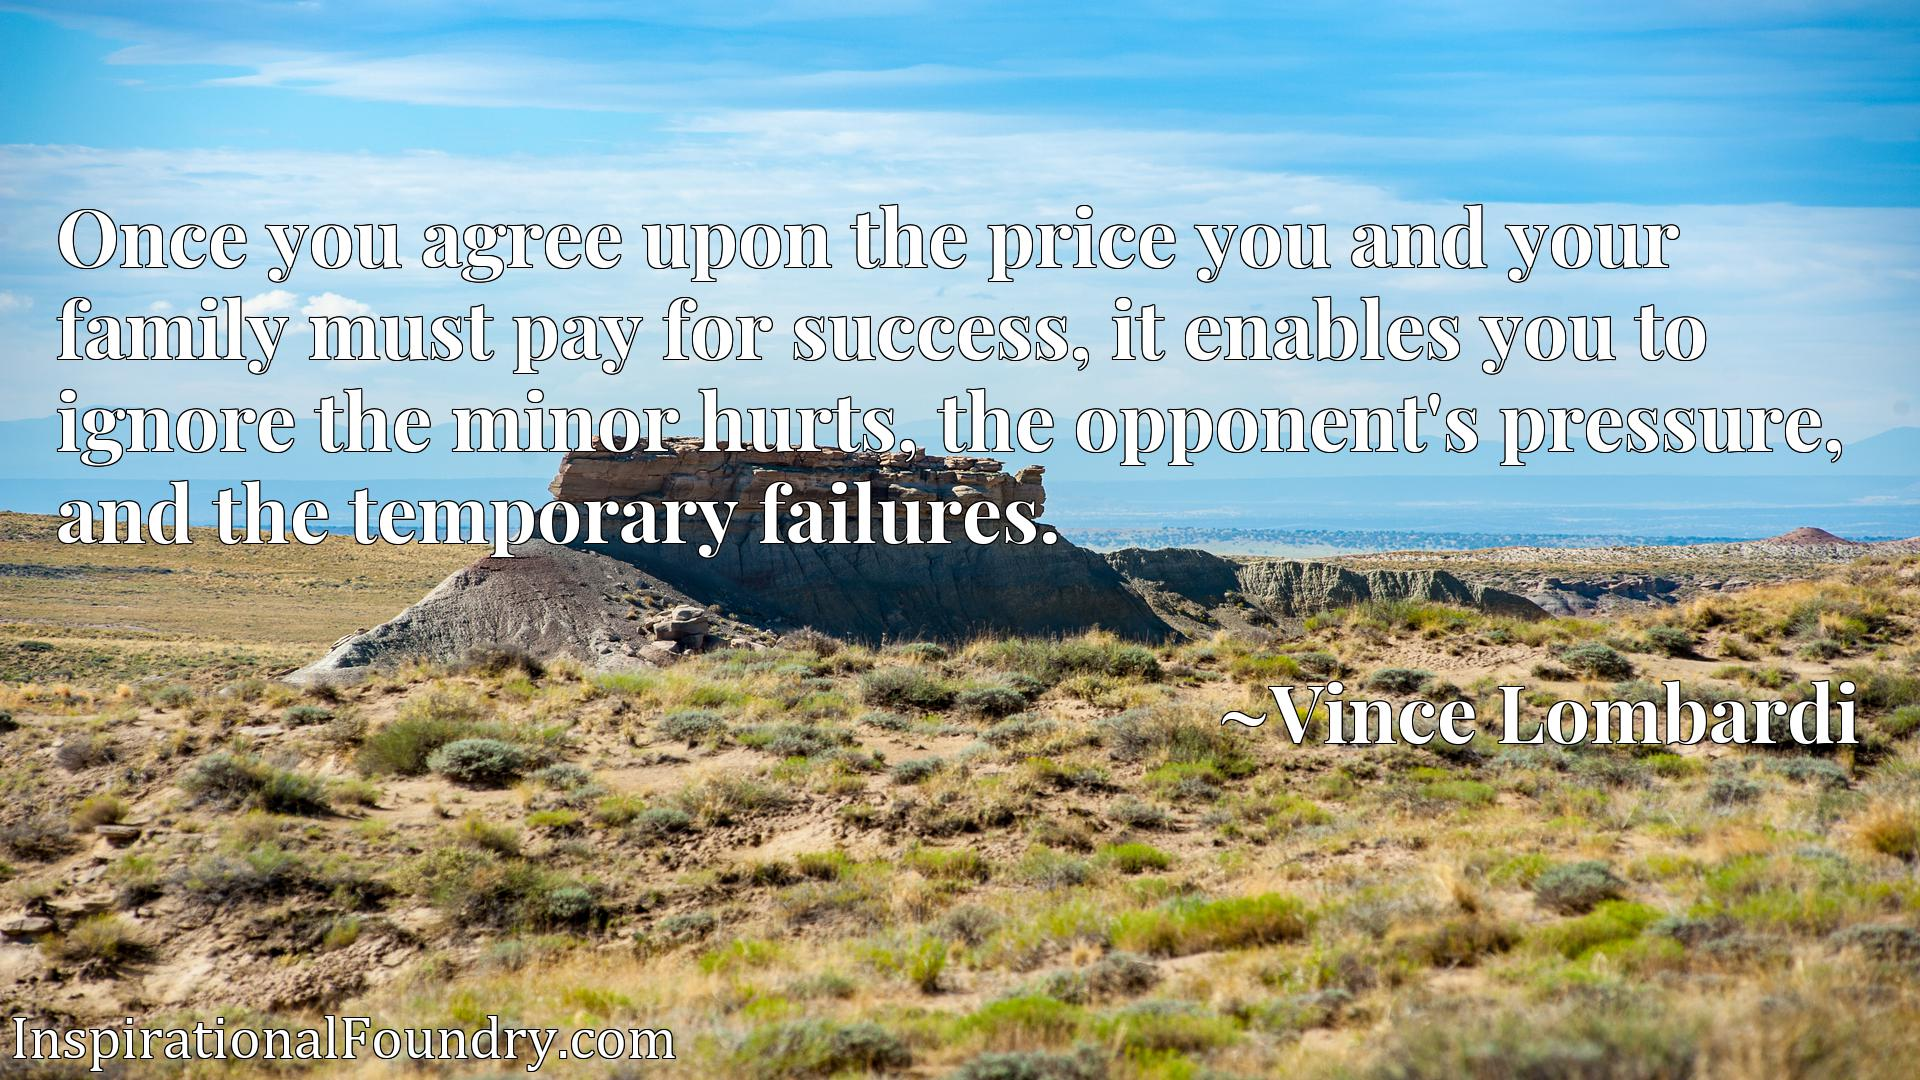 Quote Picture :Once you agree upon the price you and your family must pay for success, it enables you to ignore the minor hurts, the opponent's pressure, and the temporary failures.